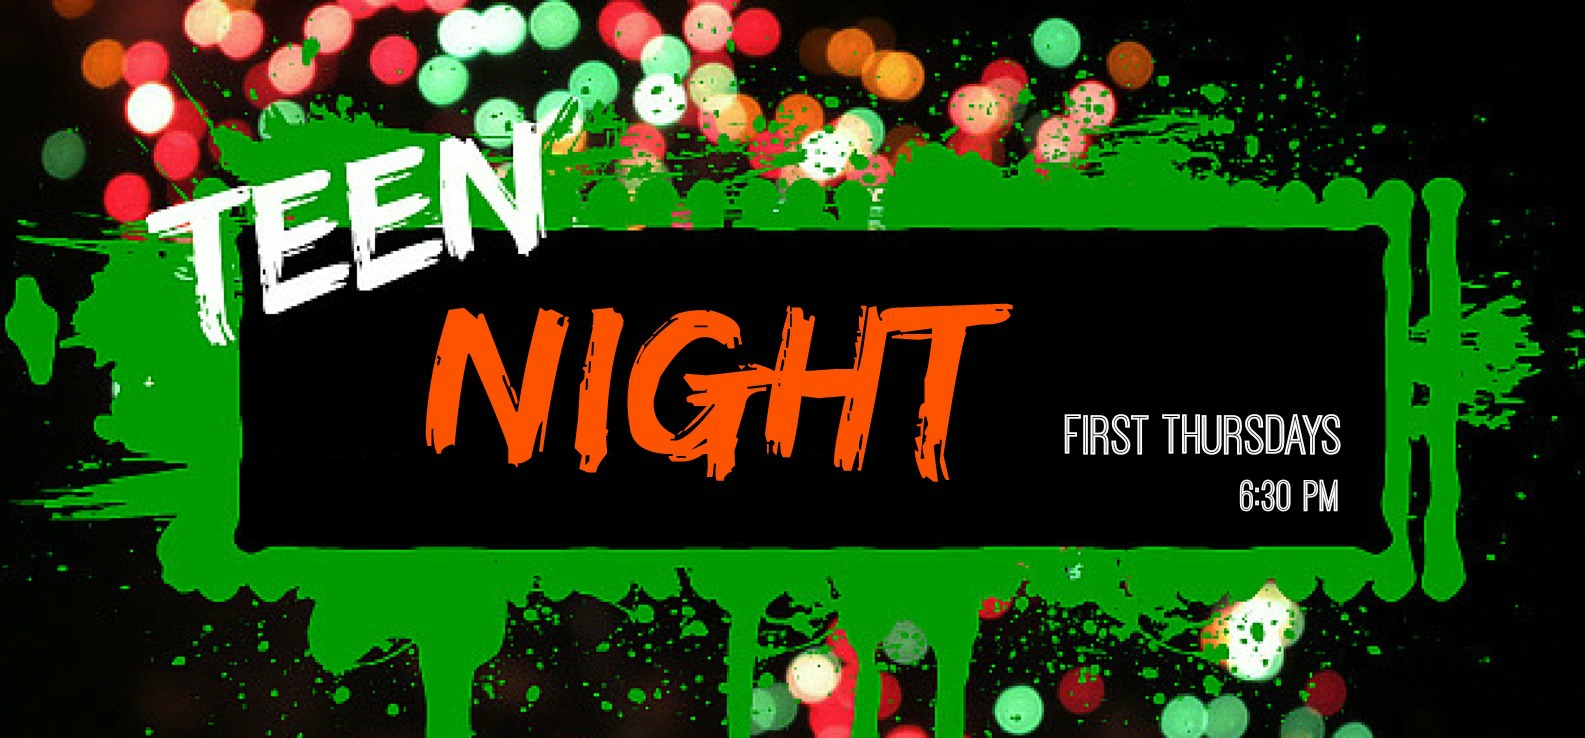 teen night graphic